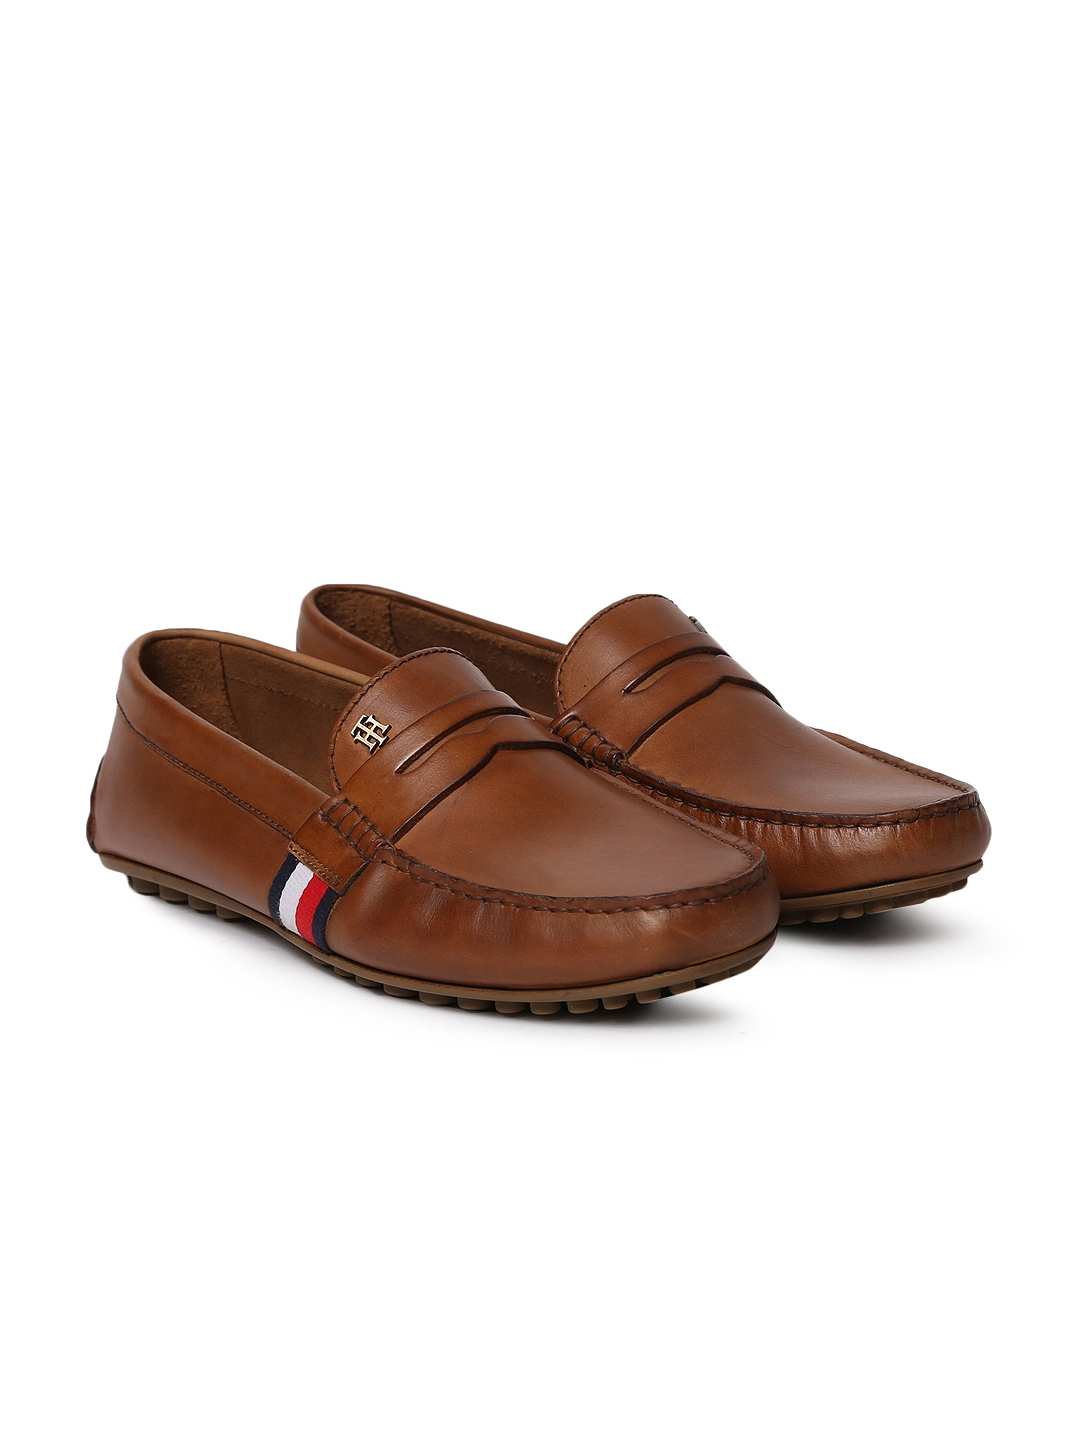 621fae2b6 Buy Tommy Hilfiger Men Tan Loafers - Casual Shoes for Men 2003095 ...